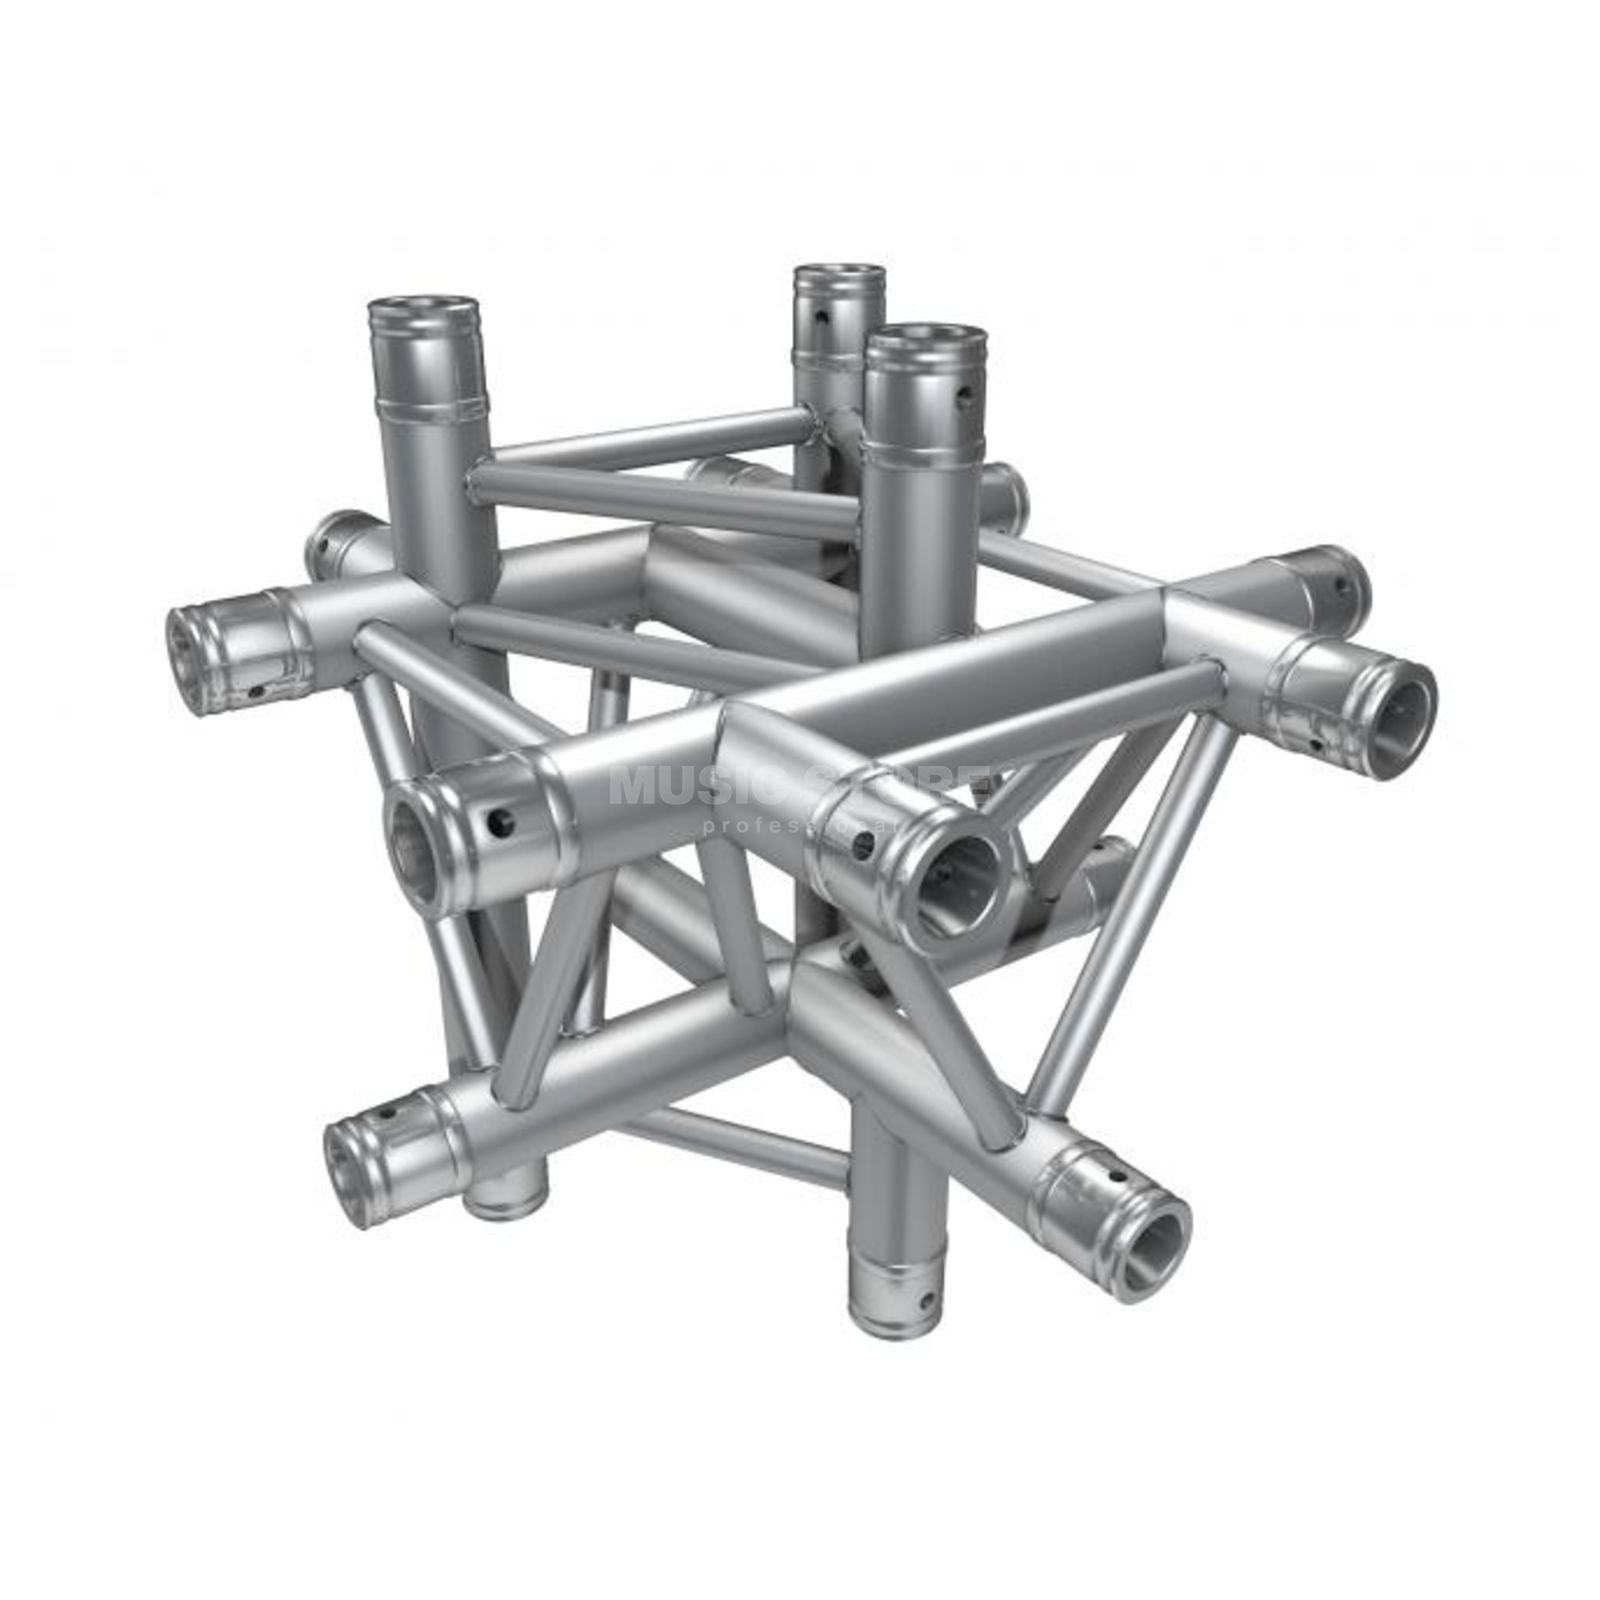 Global Truss F33 6-Way Corner C61 6-Way Corner Produktbillede